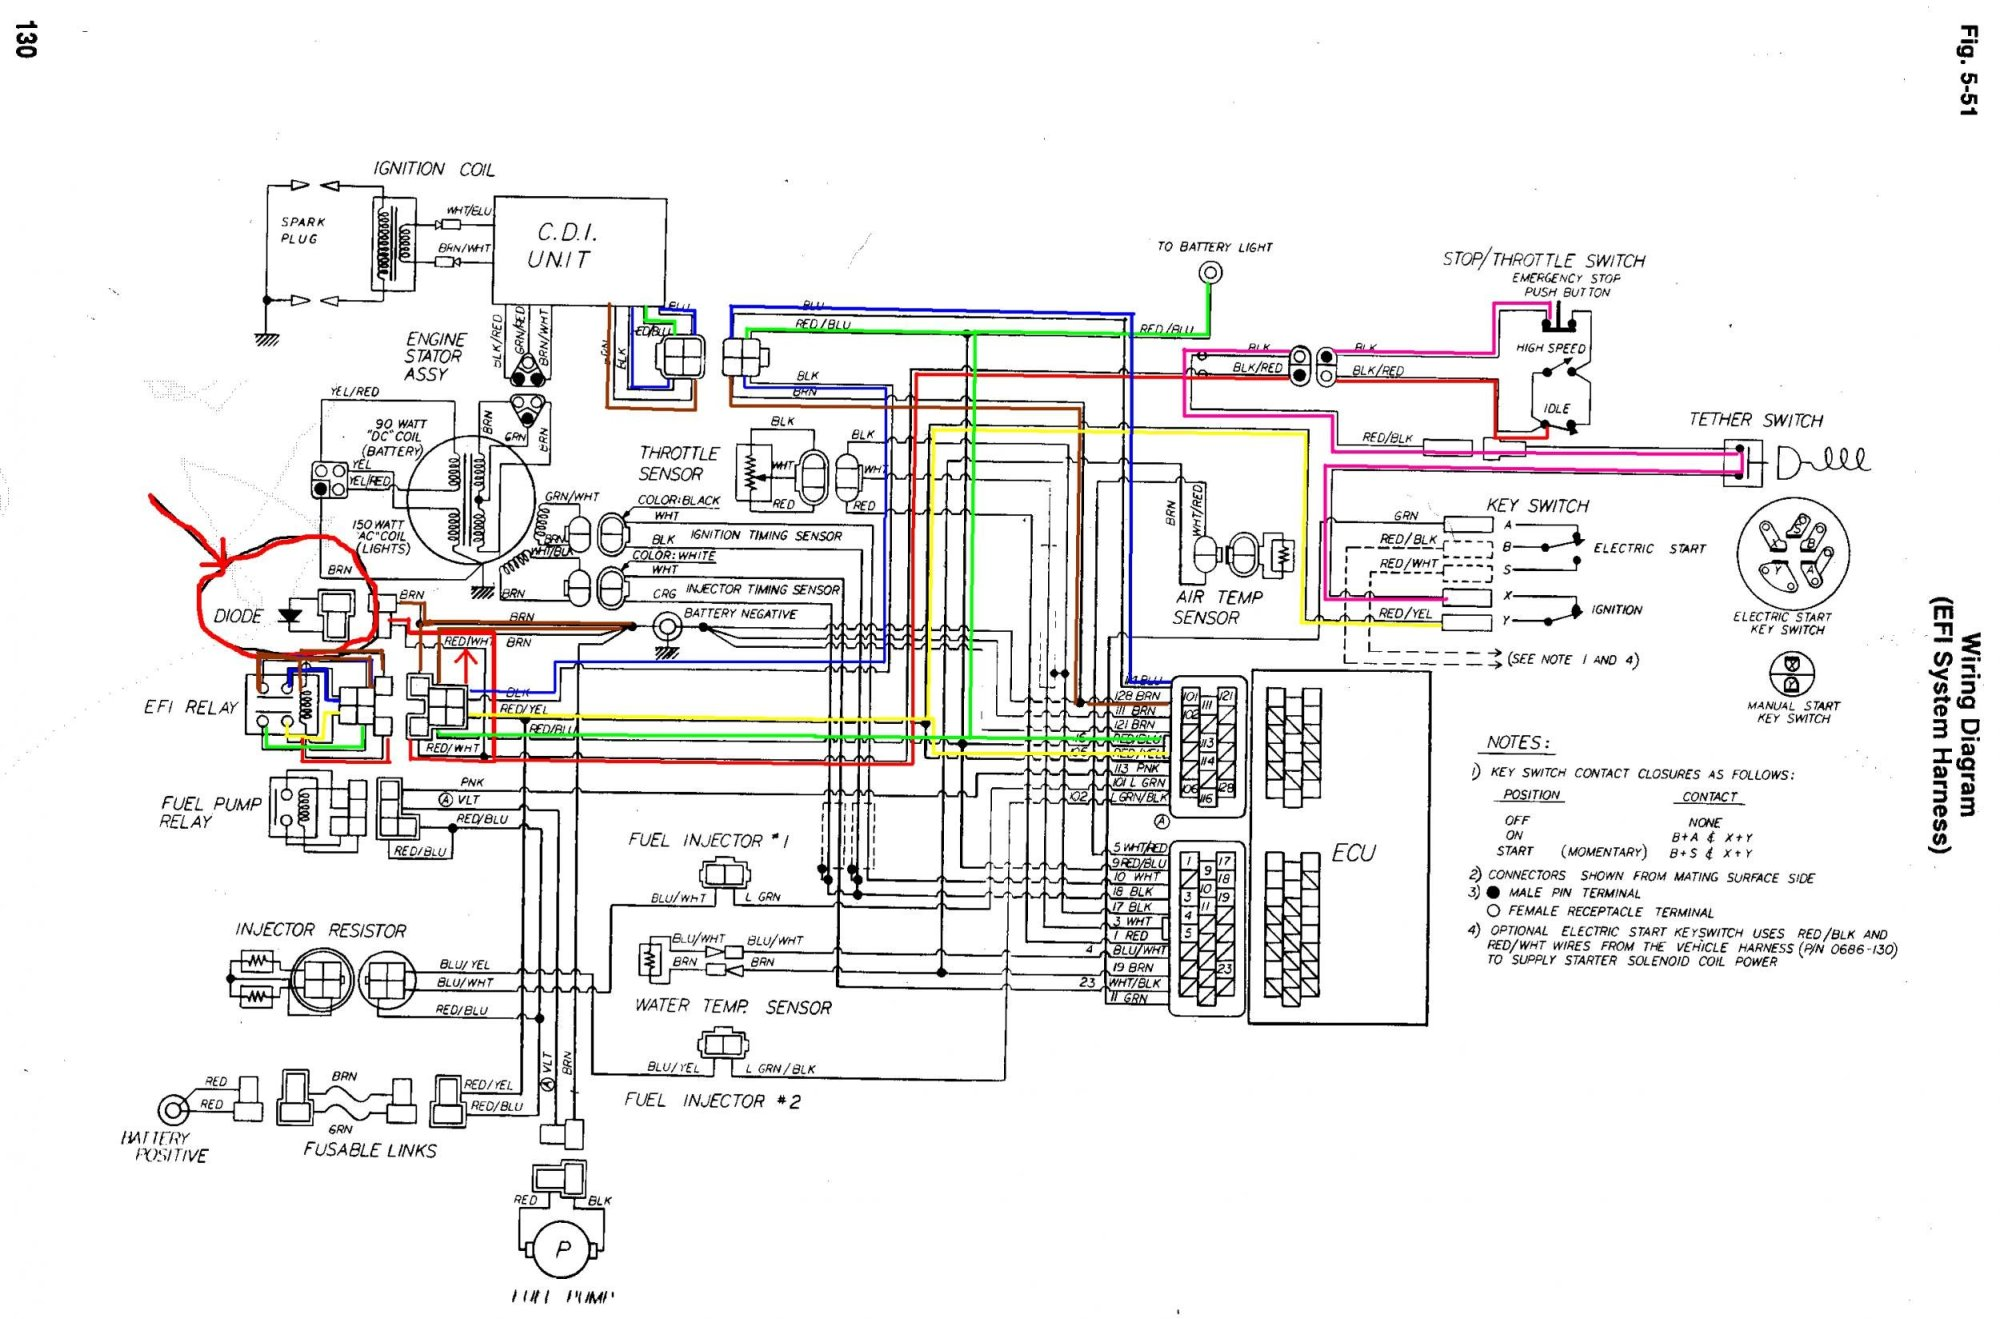 hight resolution of arctic cat wildcat 650 wiring diagram detailed schematics diagram rh highcliffemedicalcentre com 3126 caterpillar engine specs